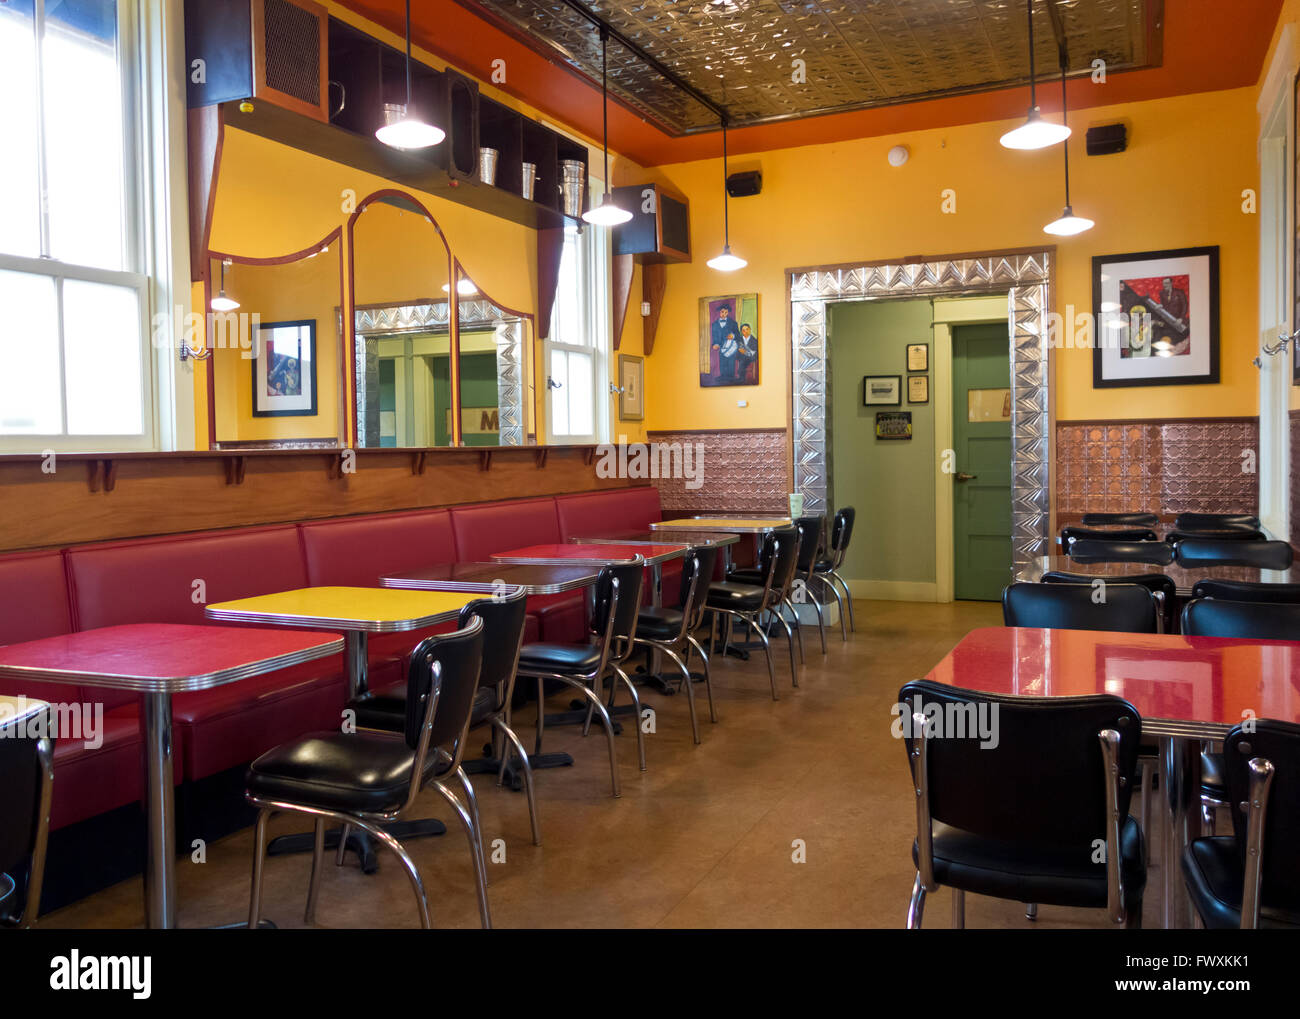 retro-diner-like-interior-of-the-useless-bay-coffee-company-restaurant-FWXKK1.jpg